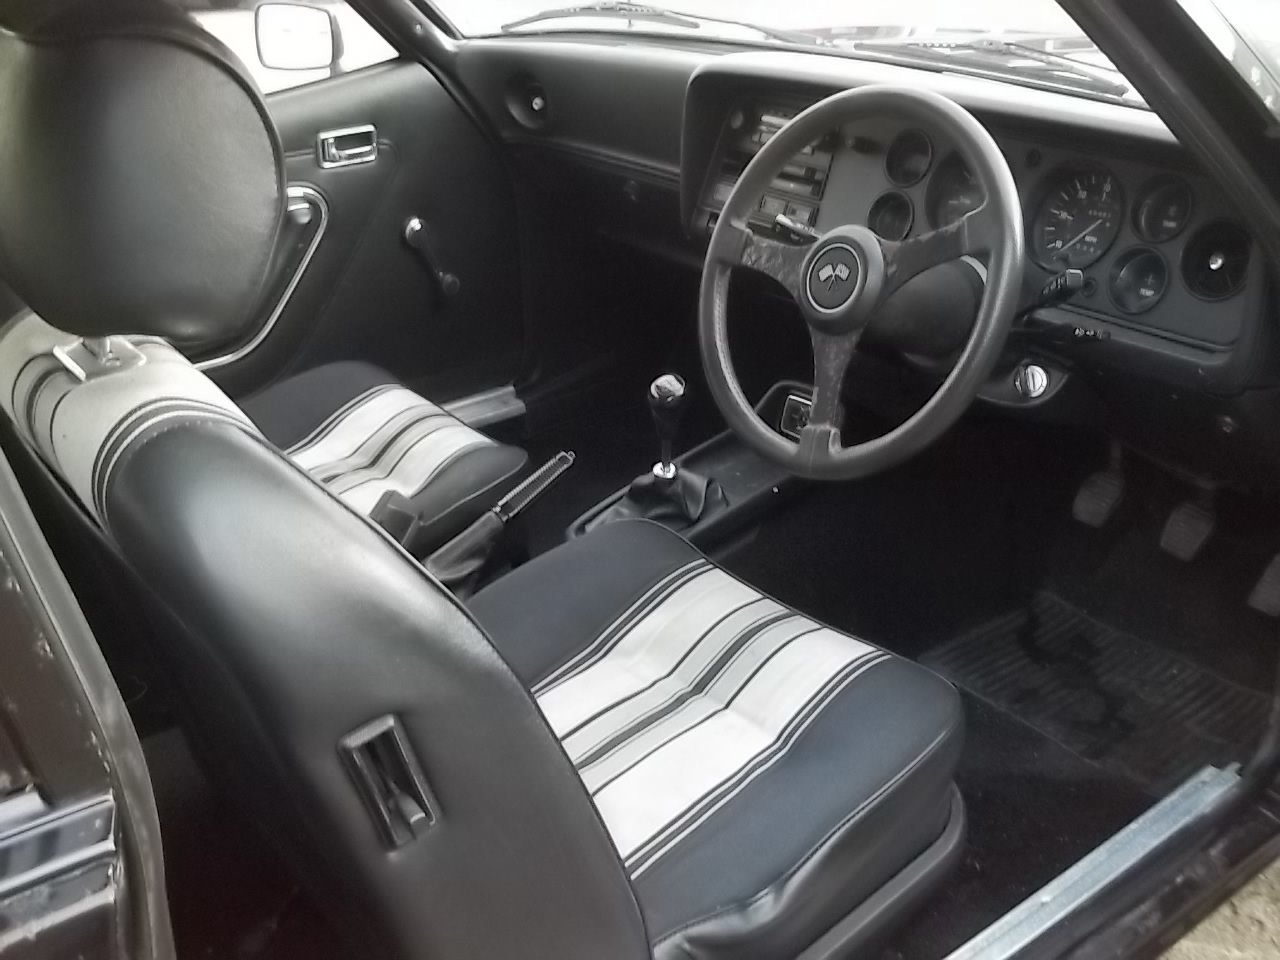 1977 Ford Capri 2.0S 1 owner from new SOLD (picture 3 of 6)